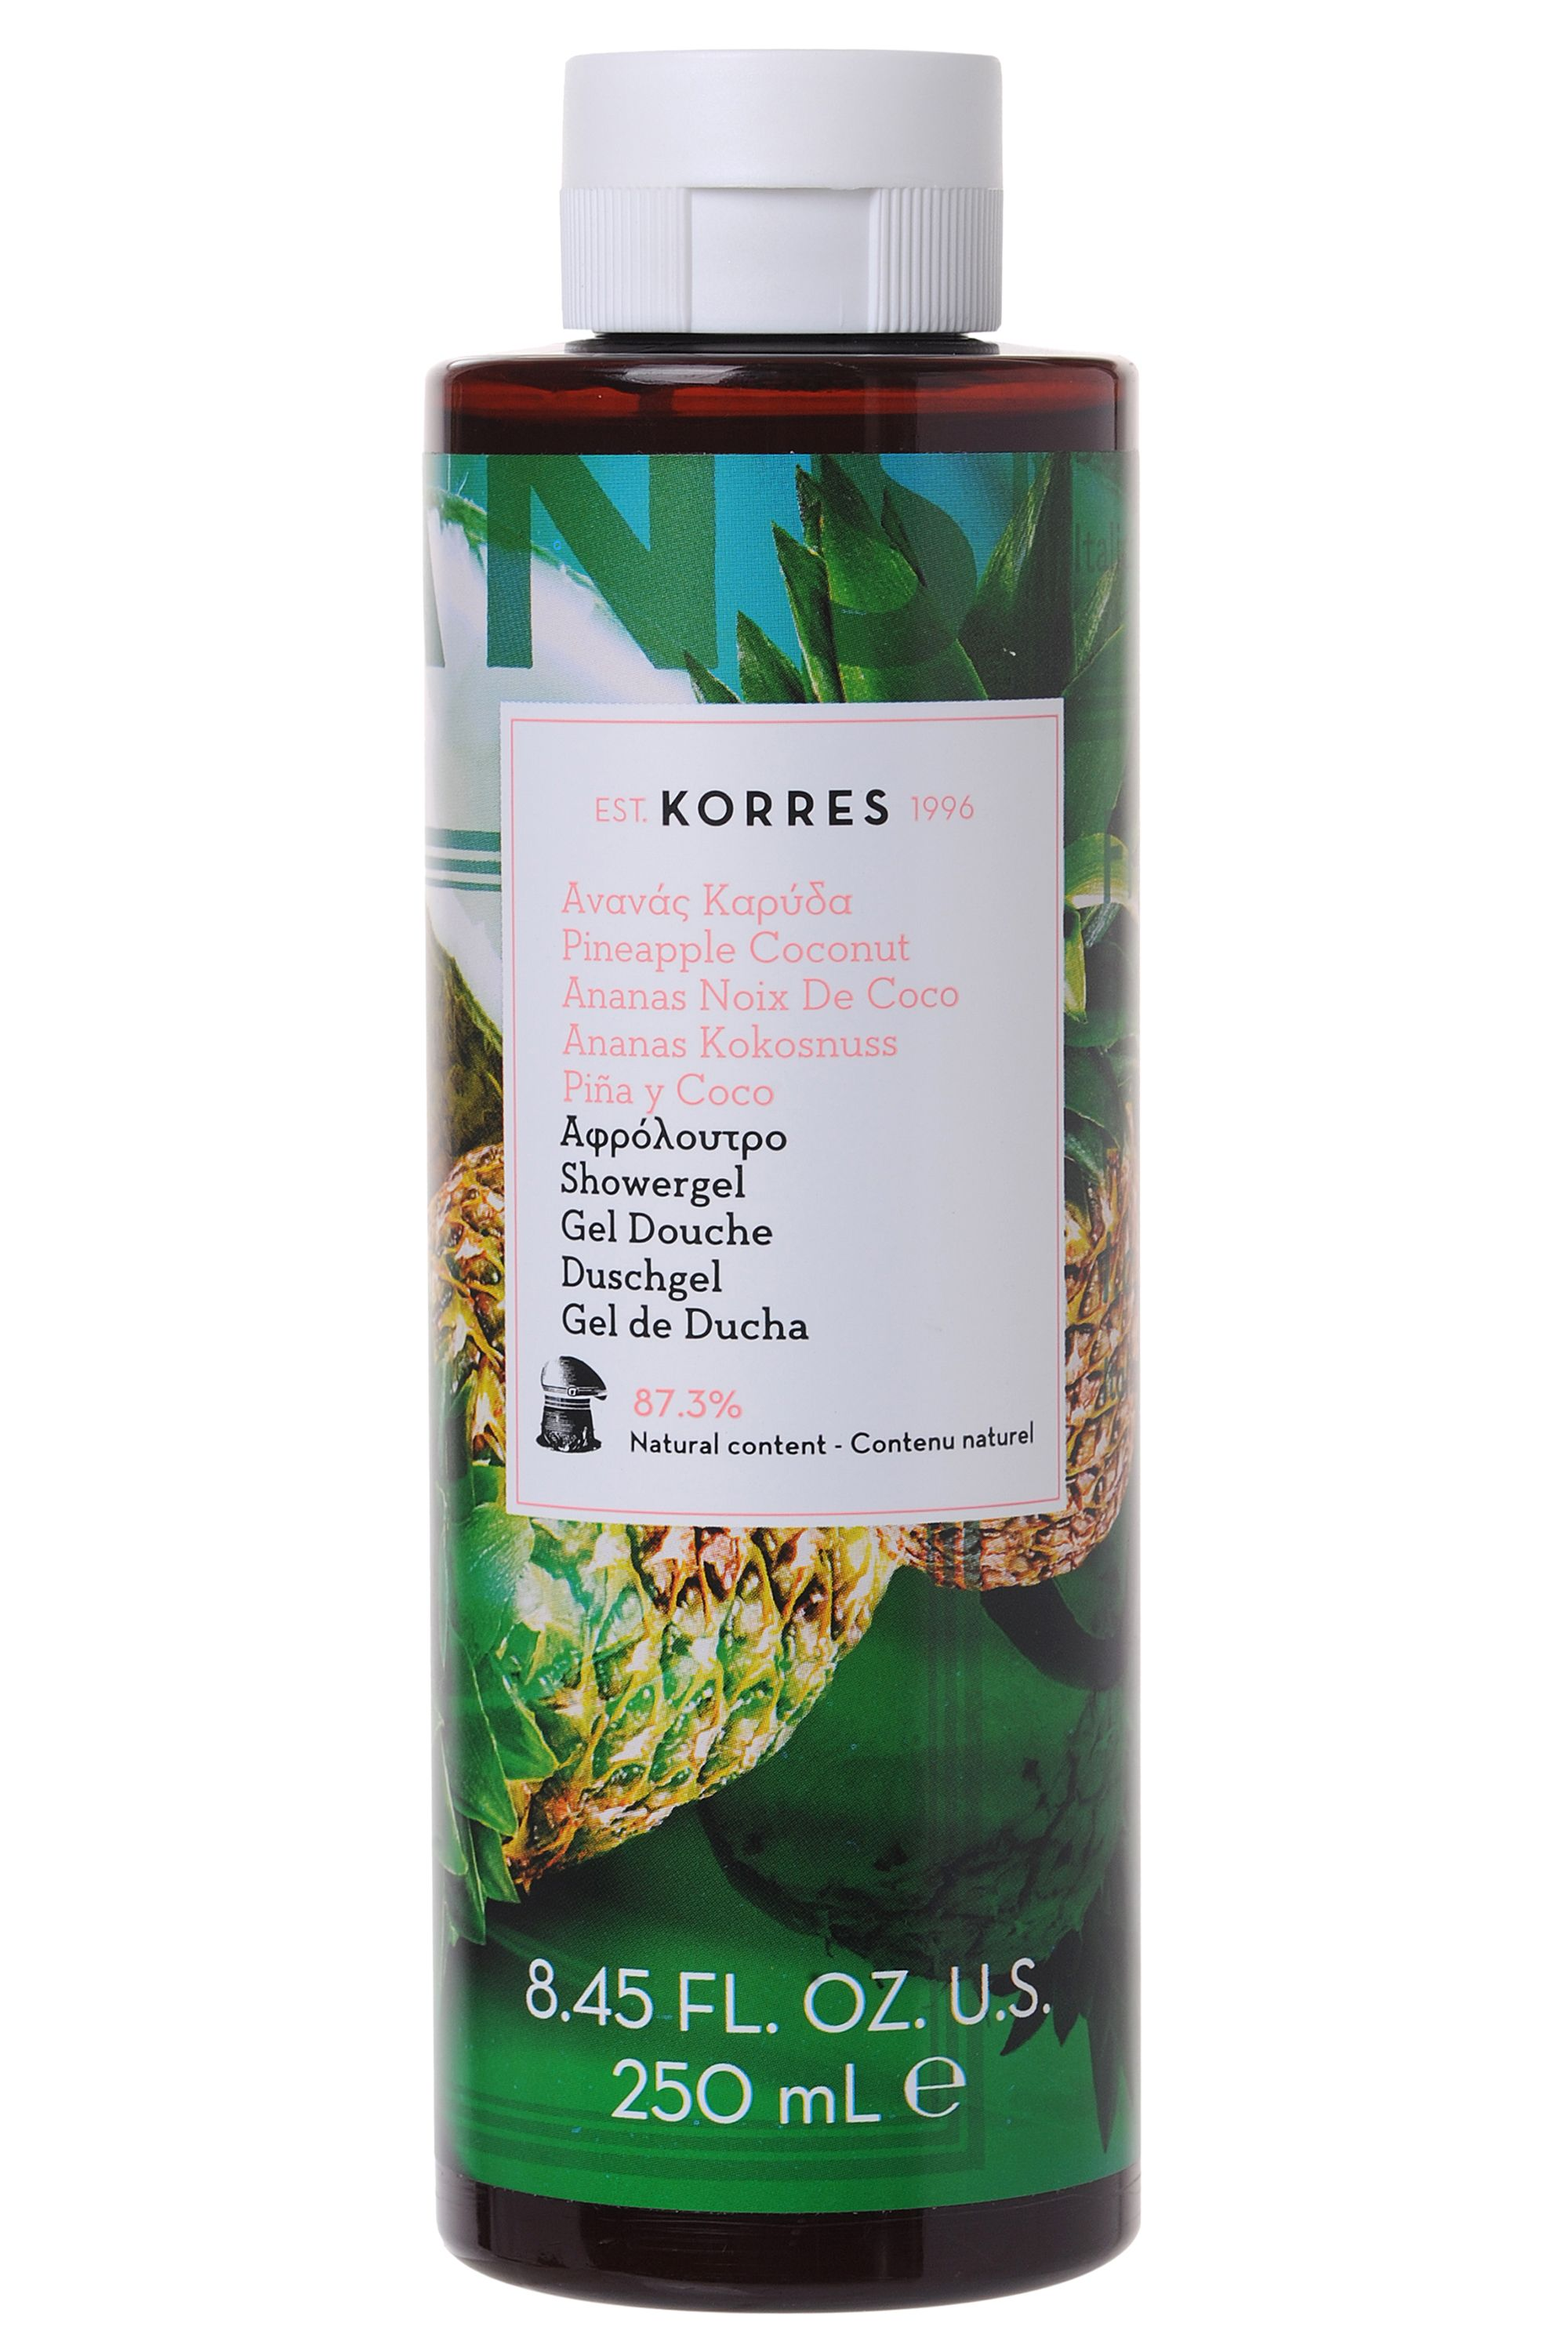 Blissim : Korres - Gel douche Ananas Coco - Gel douche Ananas Coco